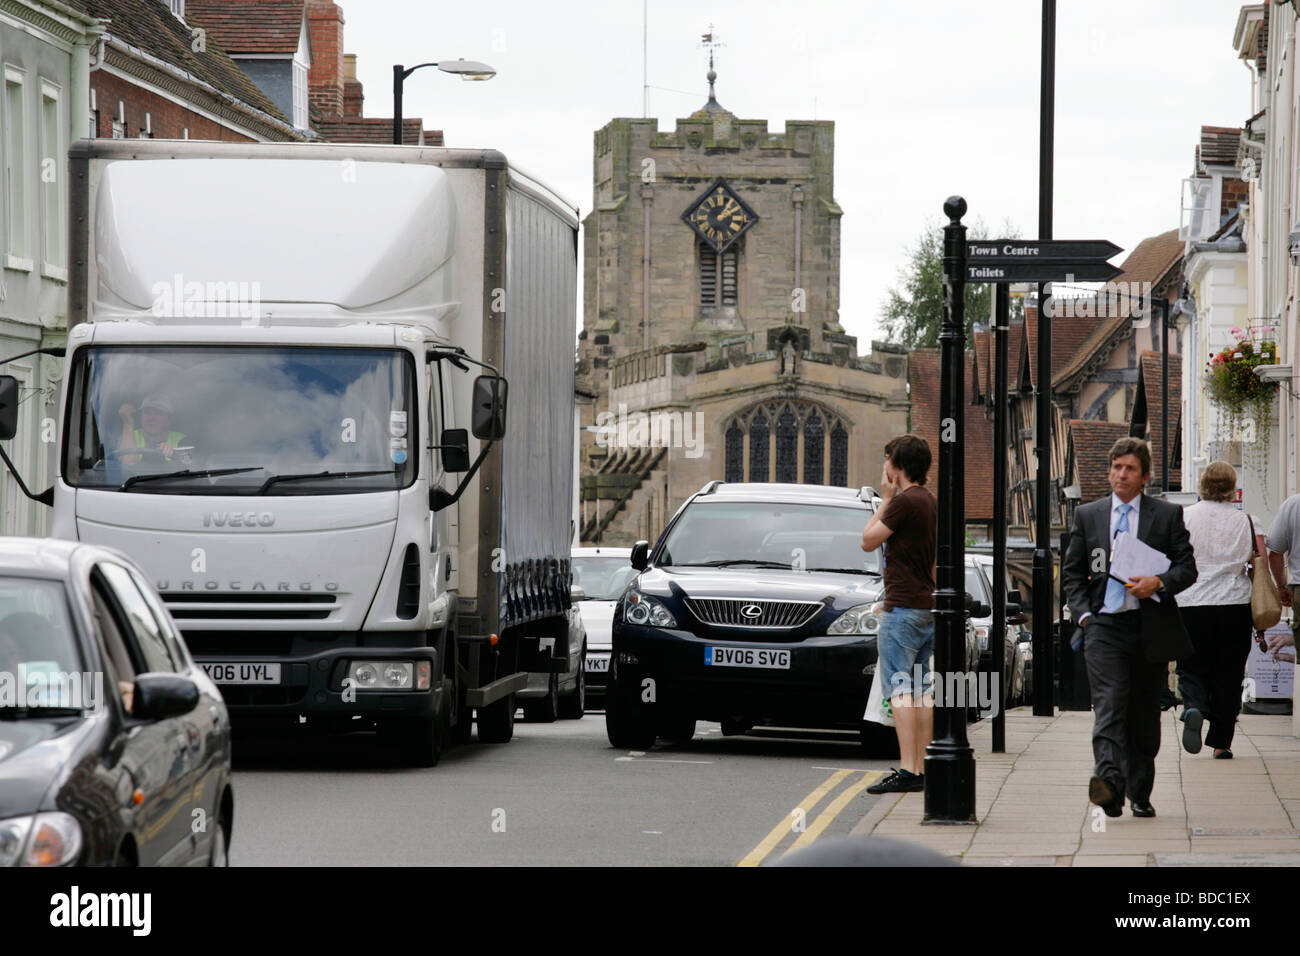 Traffic congestion in High Street, Warwick, UK - Stock Image